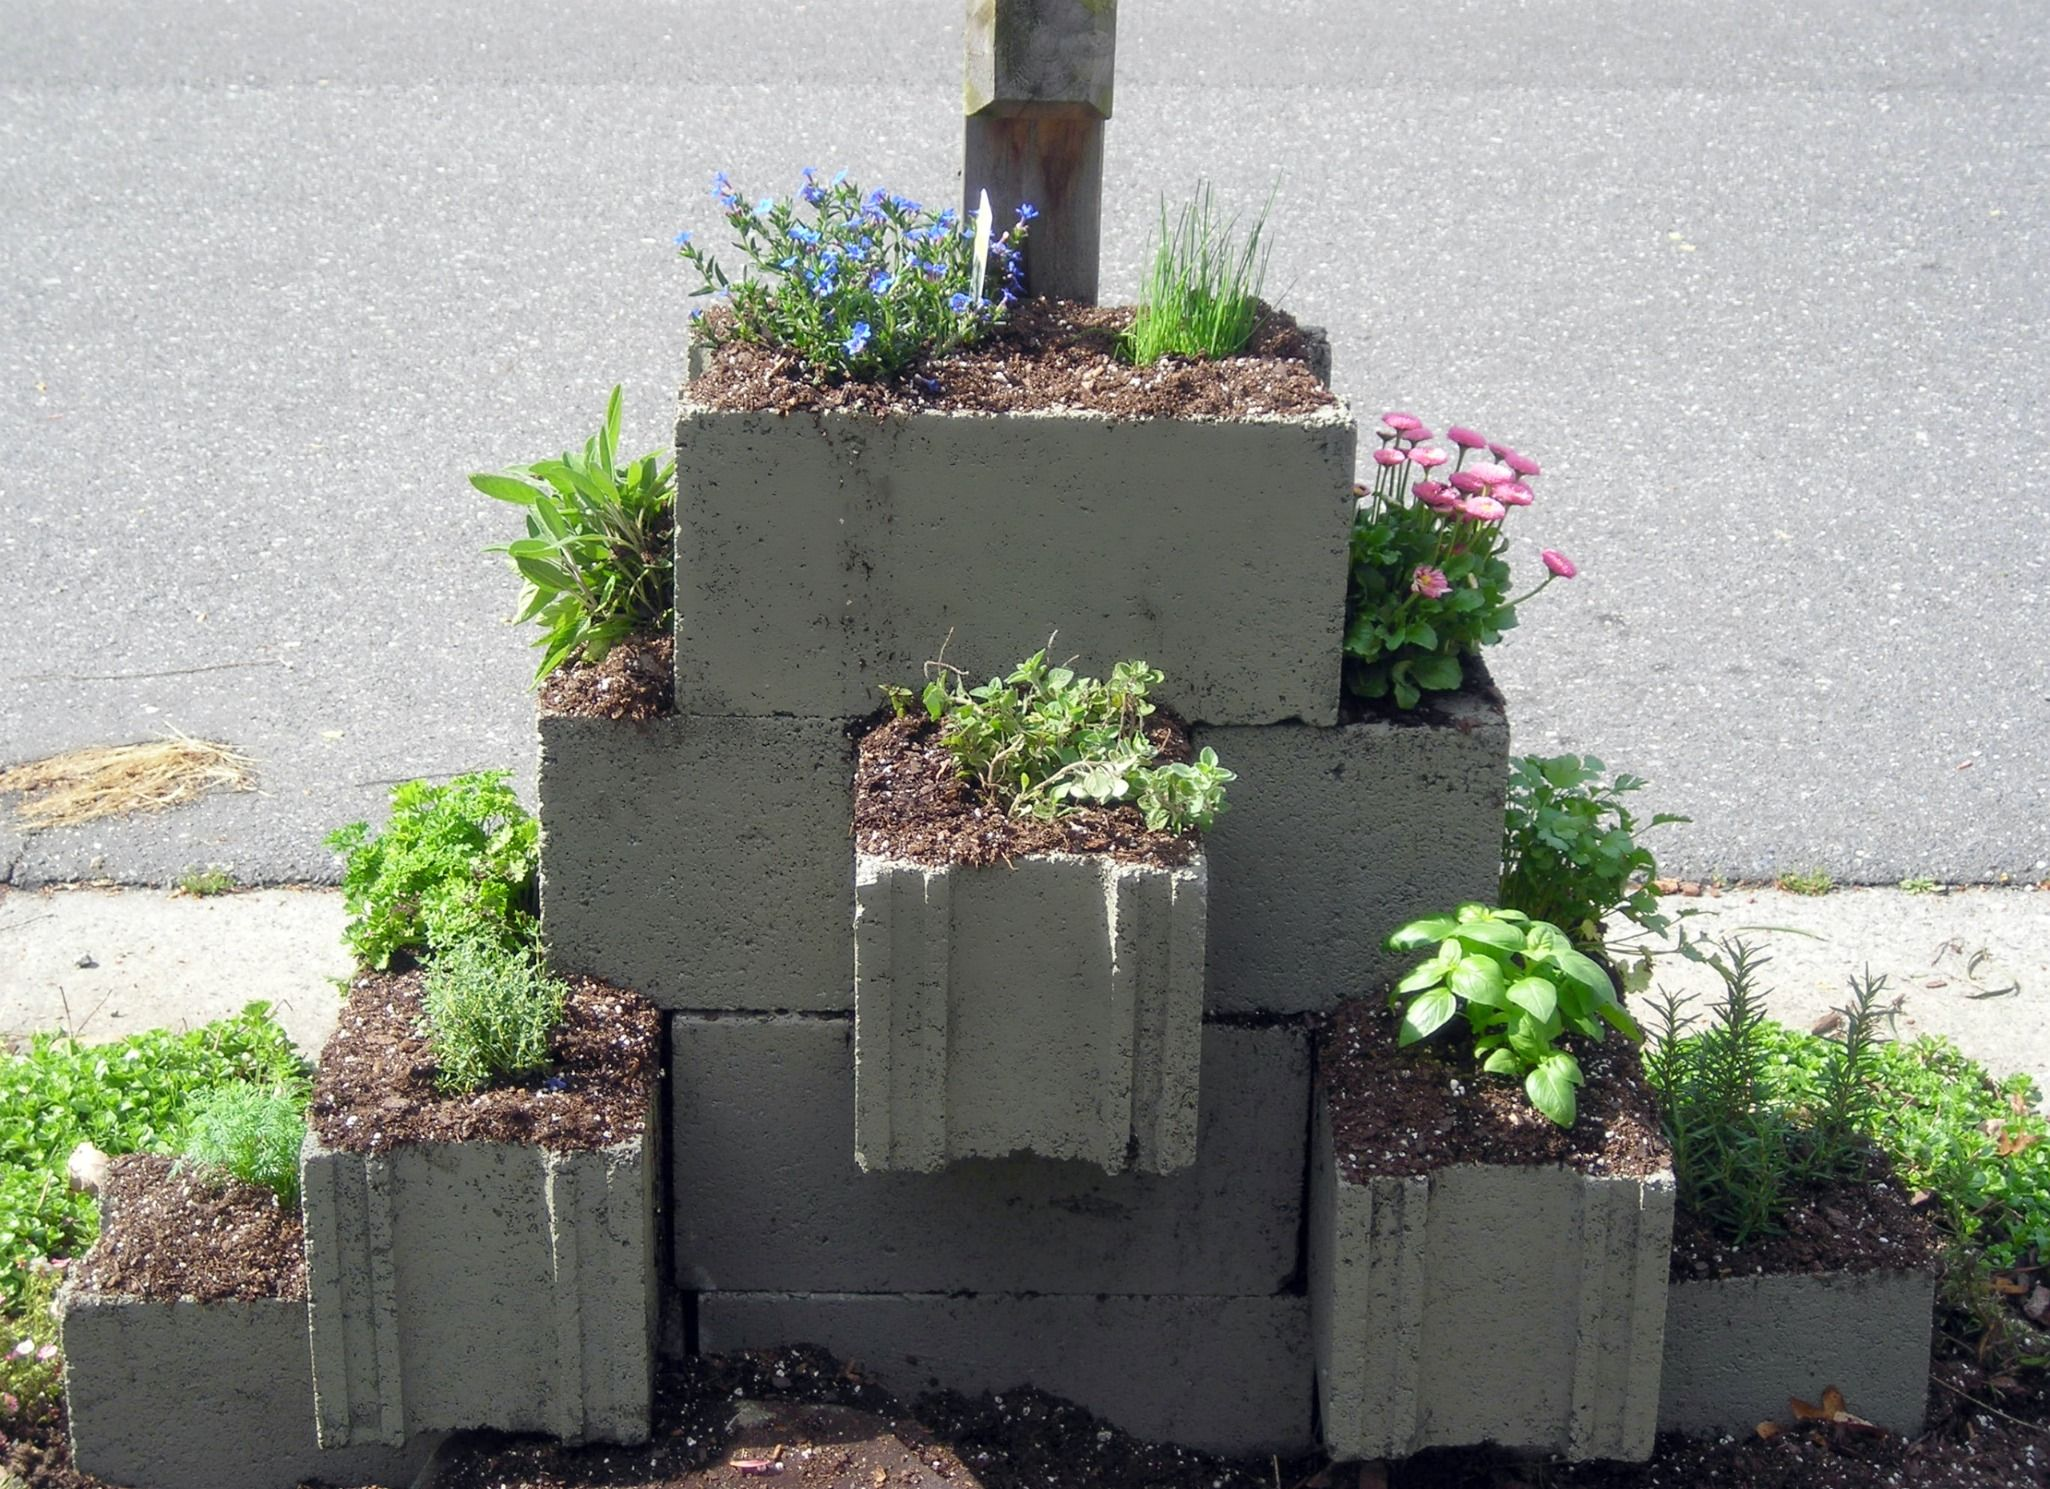 Cinder Block Herb Garden By The Mail Box, The Only